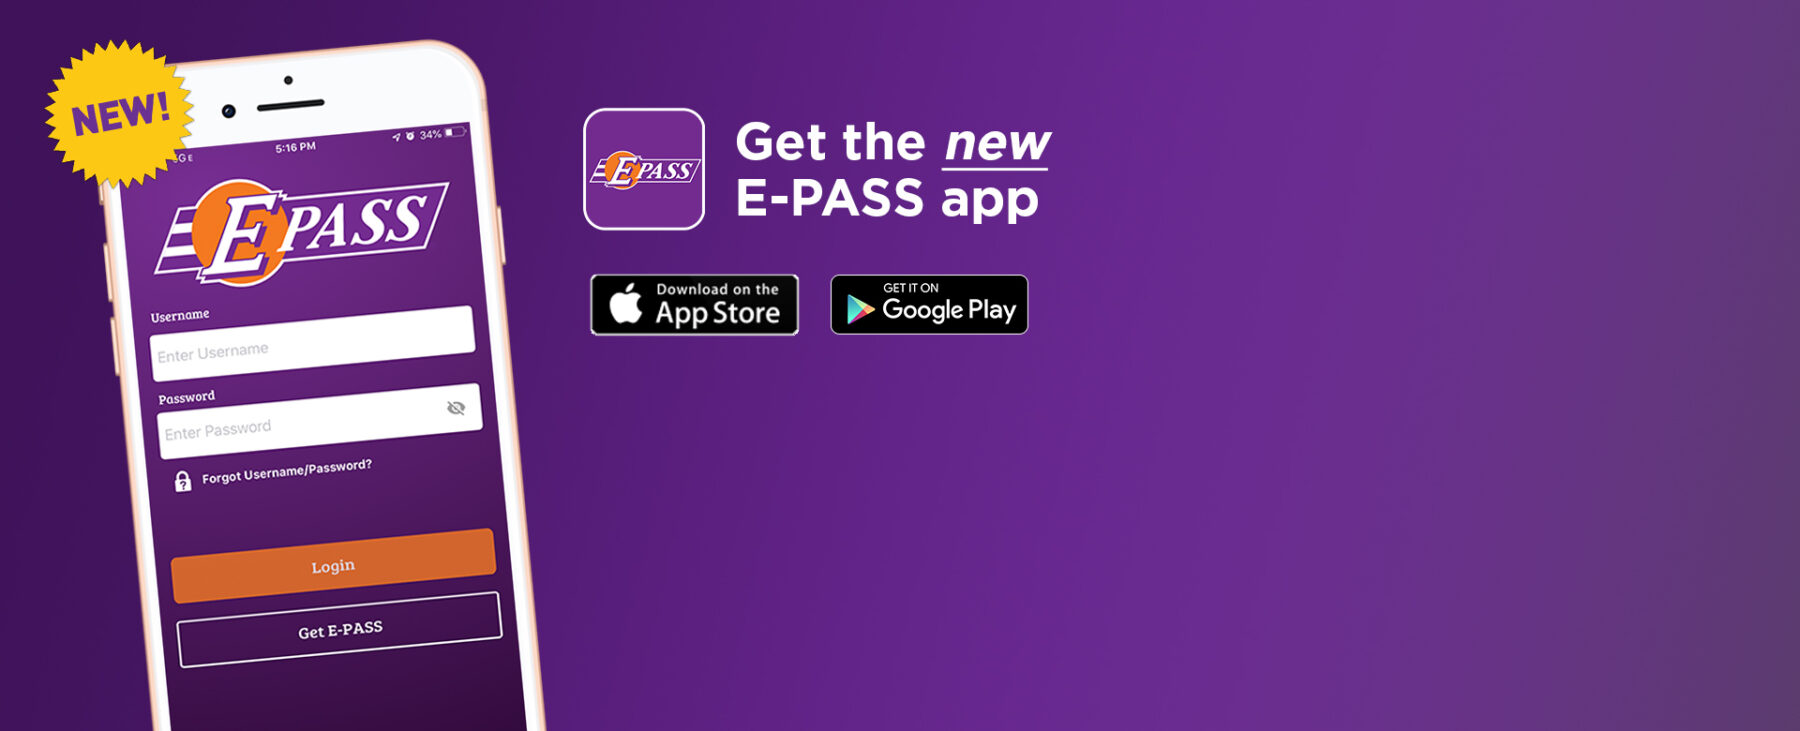 Get the new E-PASS app